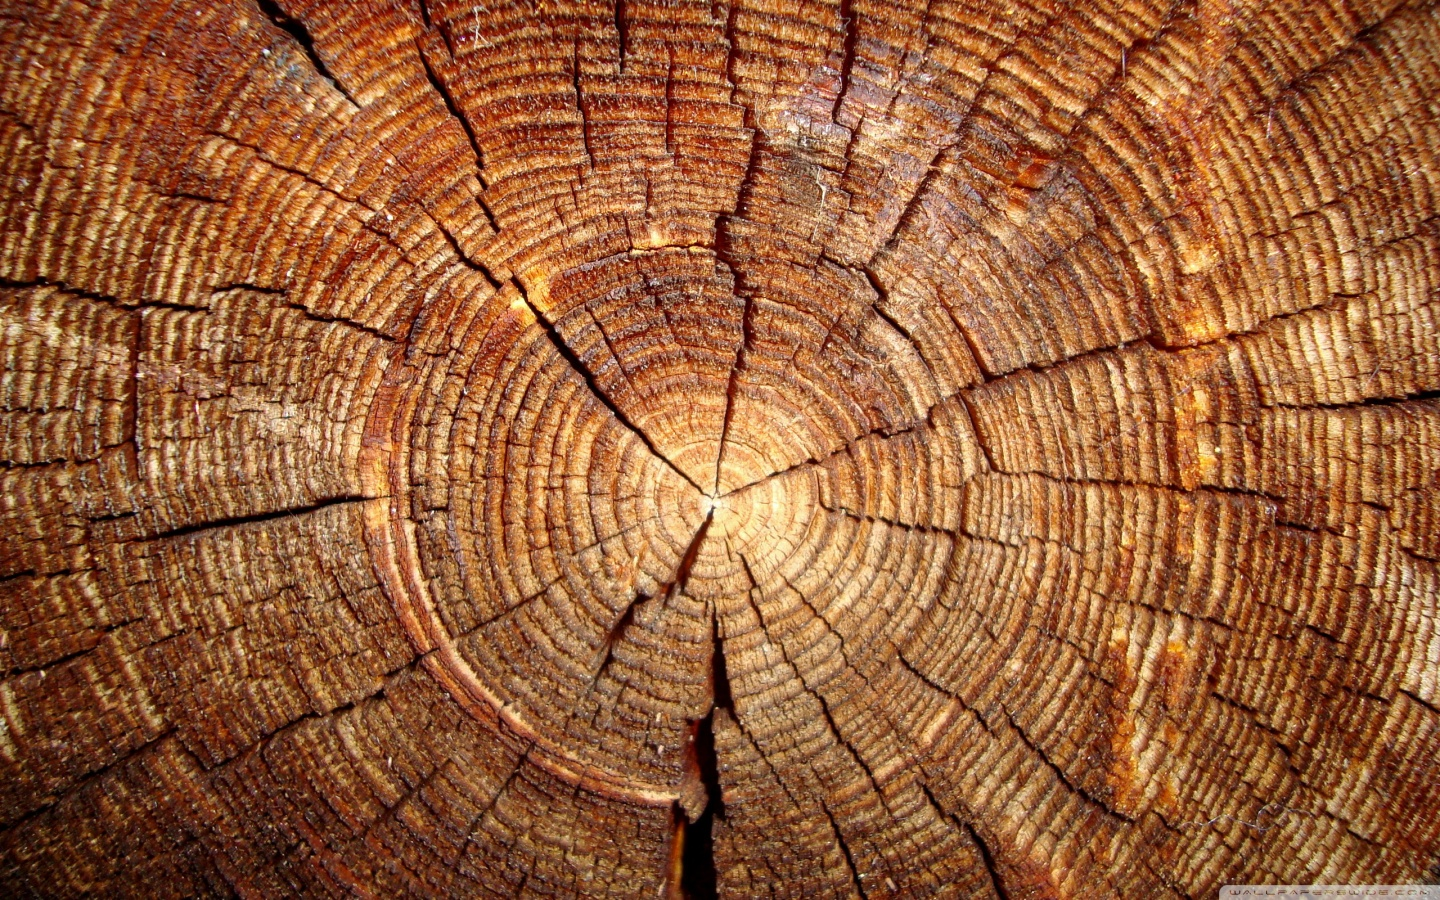 fresh-cut wood on its side so you can see the tree rings, or age rings, complete with cracks and saw marks.